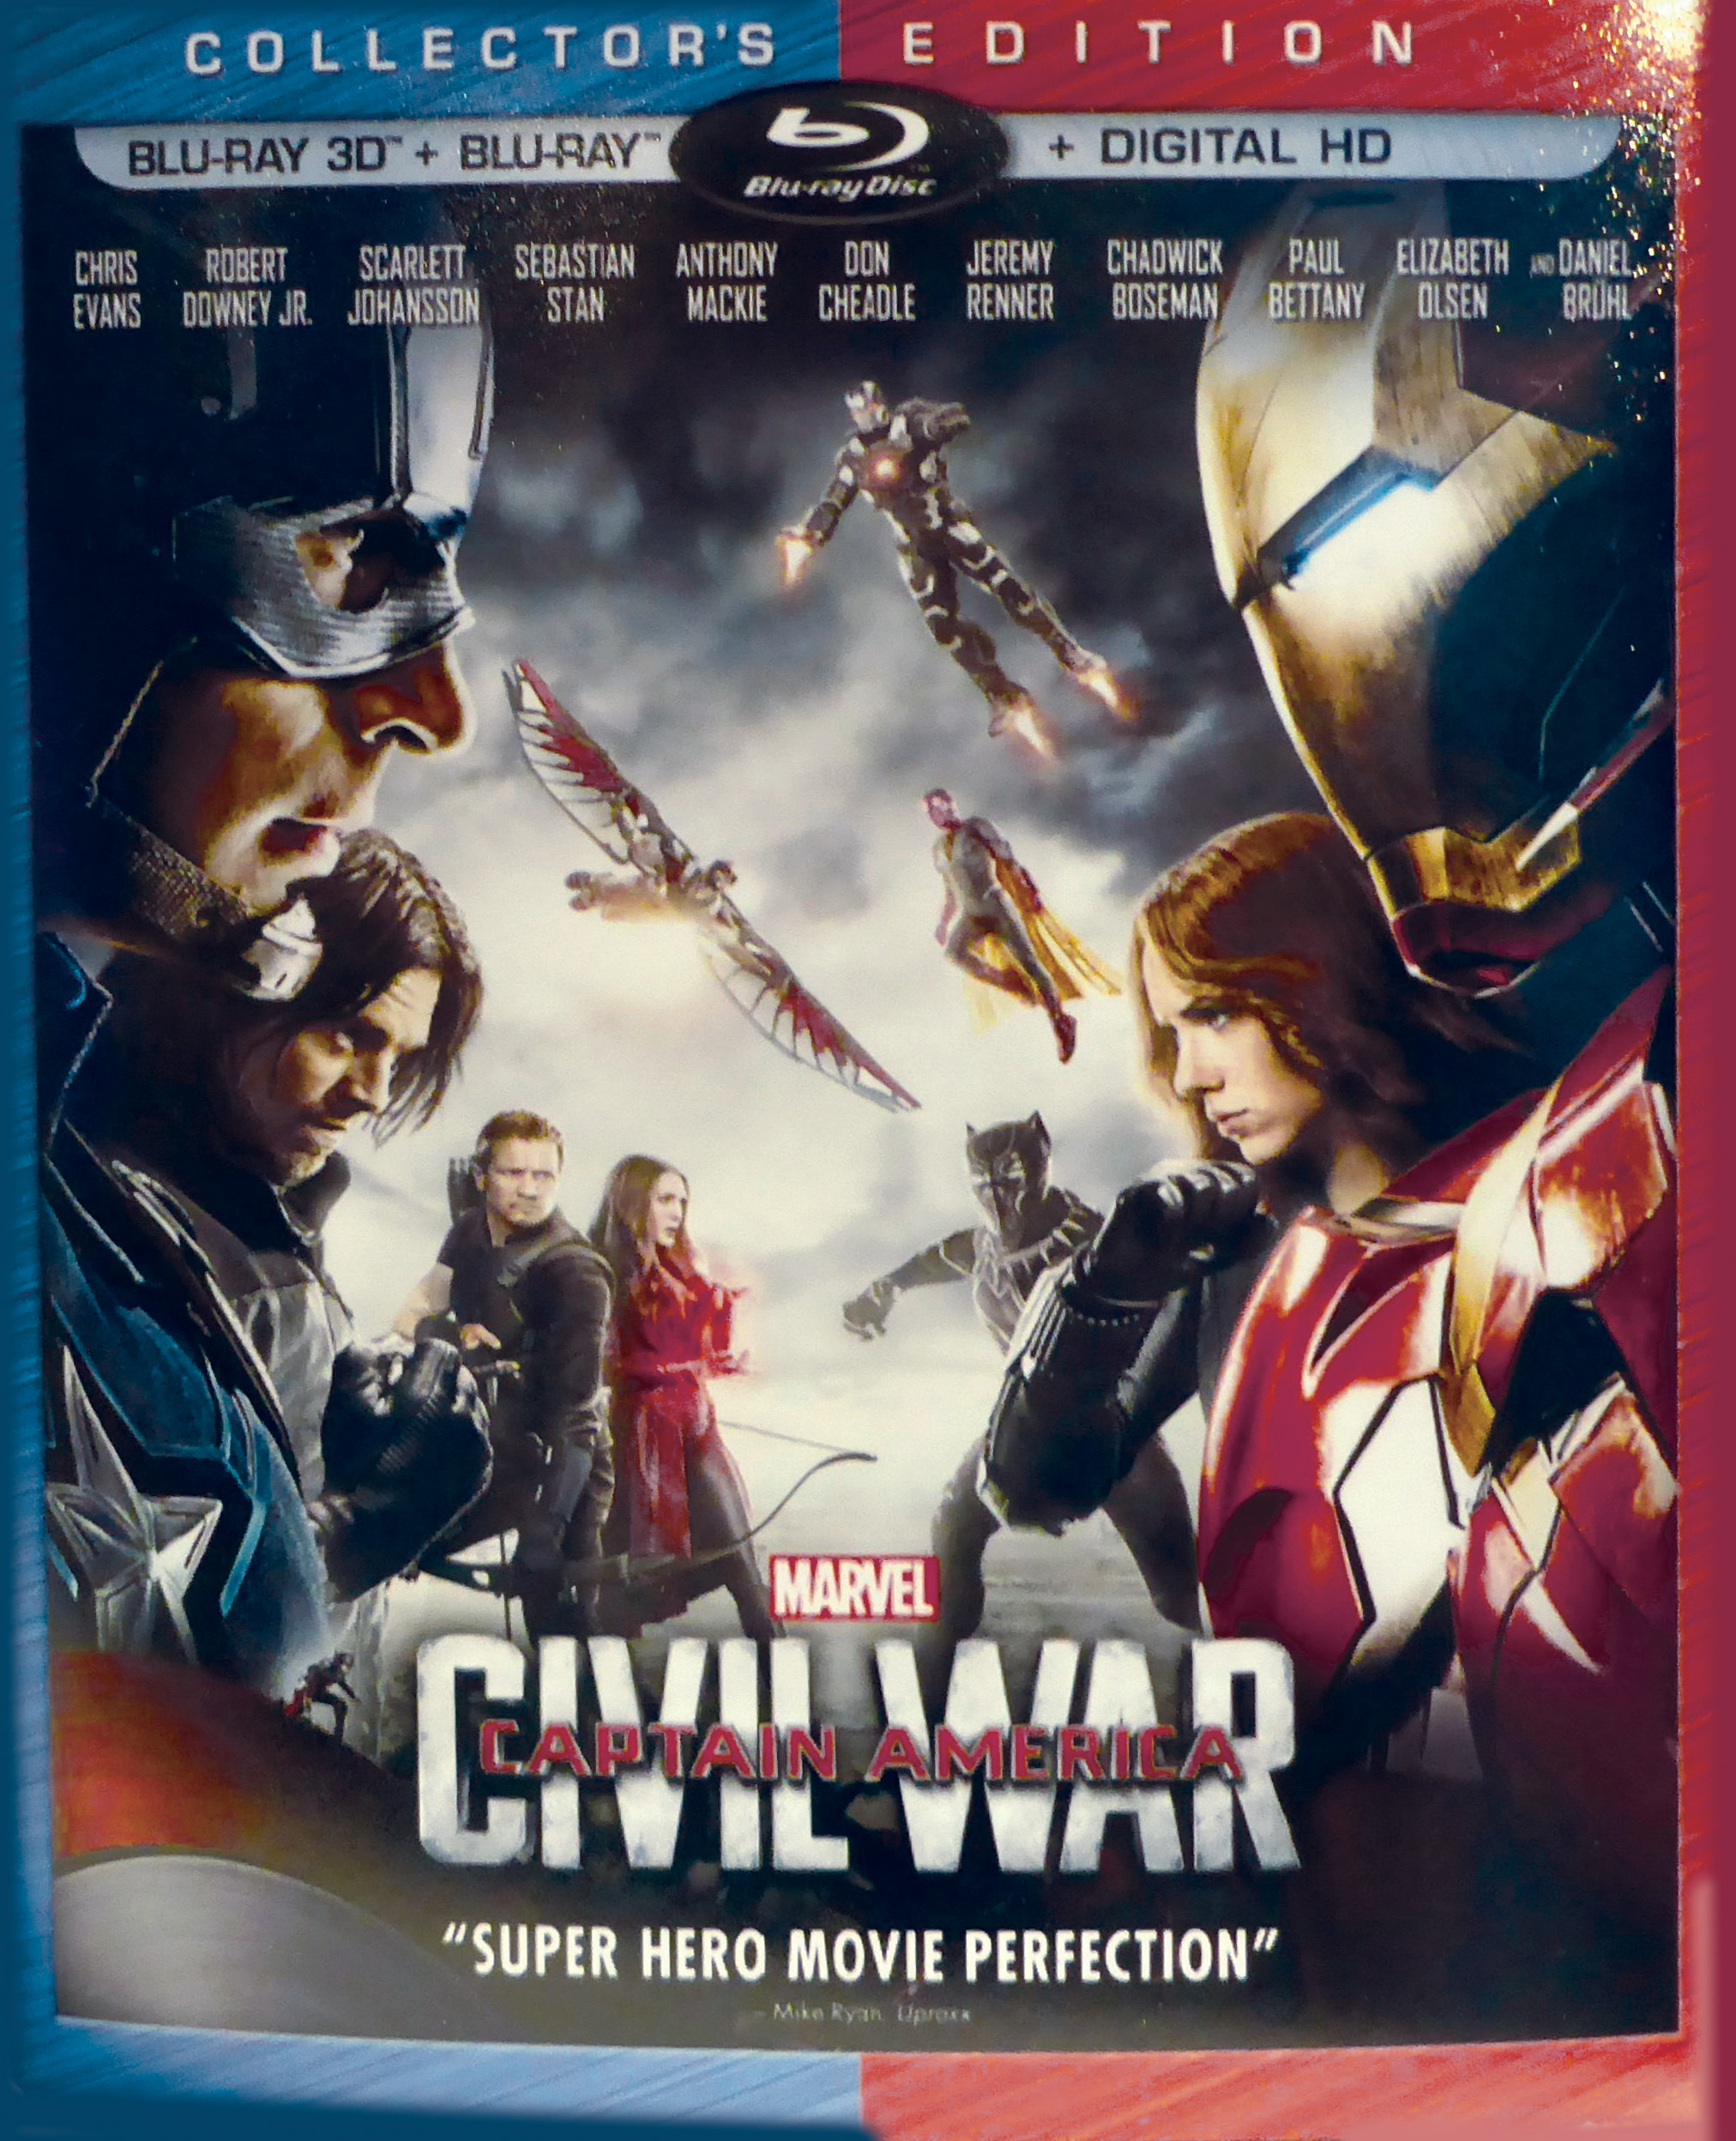 Captain America Civil War Collector's Edition Blu-ray DVD cover